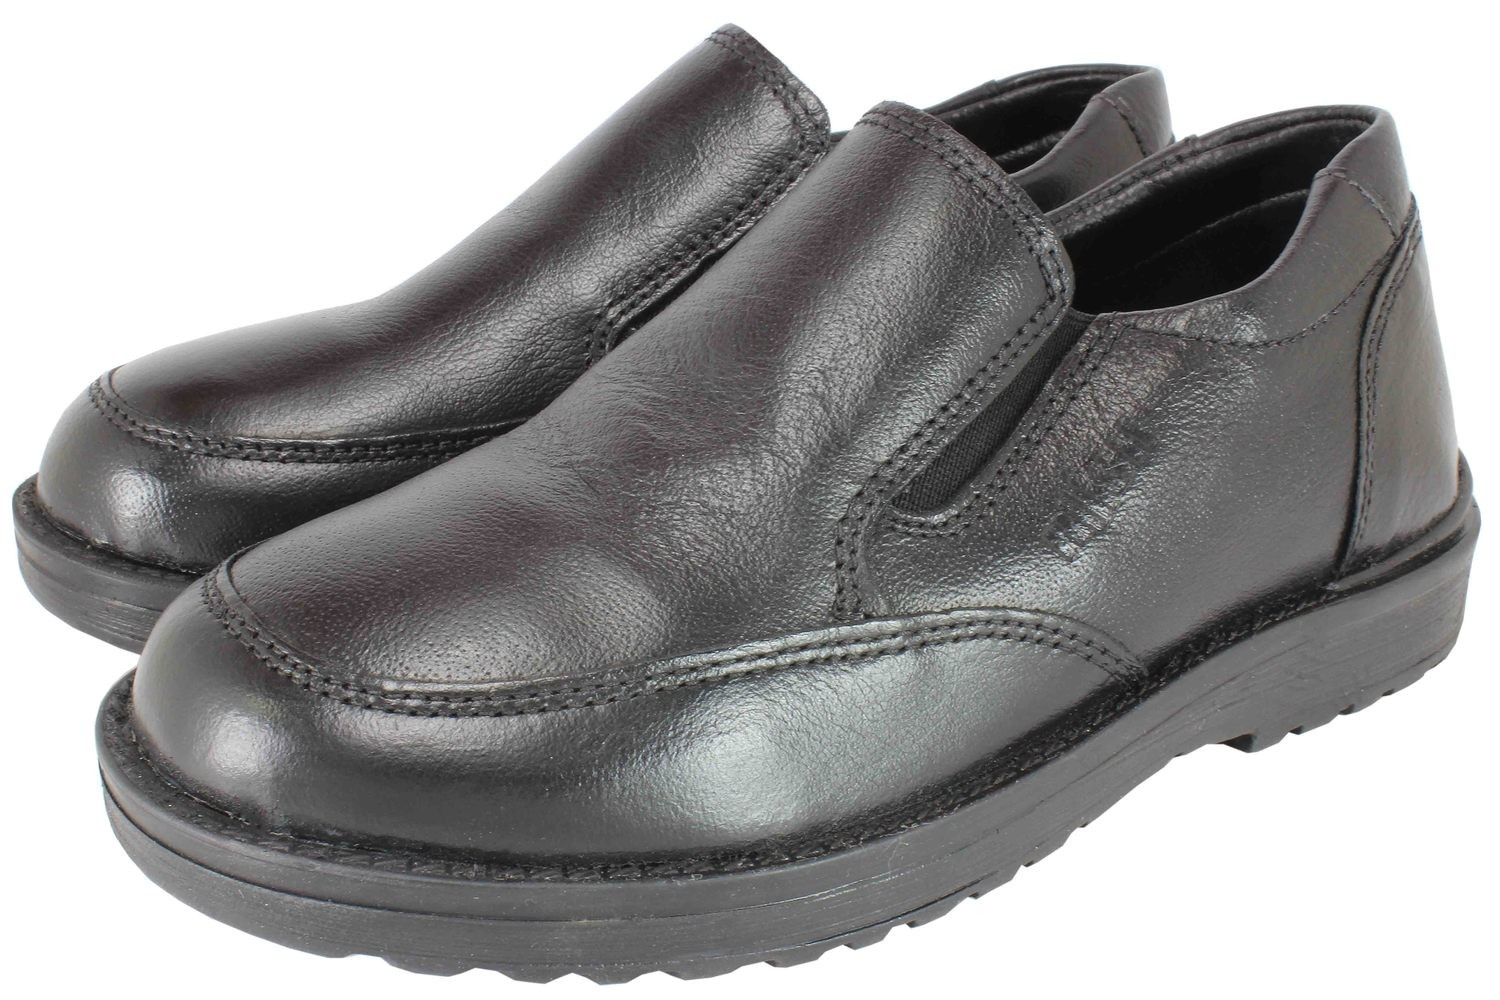 Boys Shoes Genuine Leather Black - SUGGESTED RETAIL PRICE $30.00 - WHOLESALE PRICE $7 - Minimum purchase 14